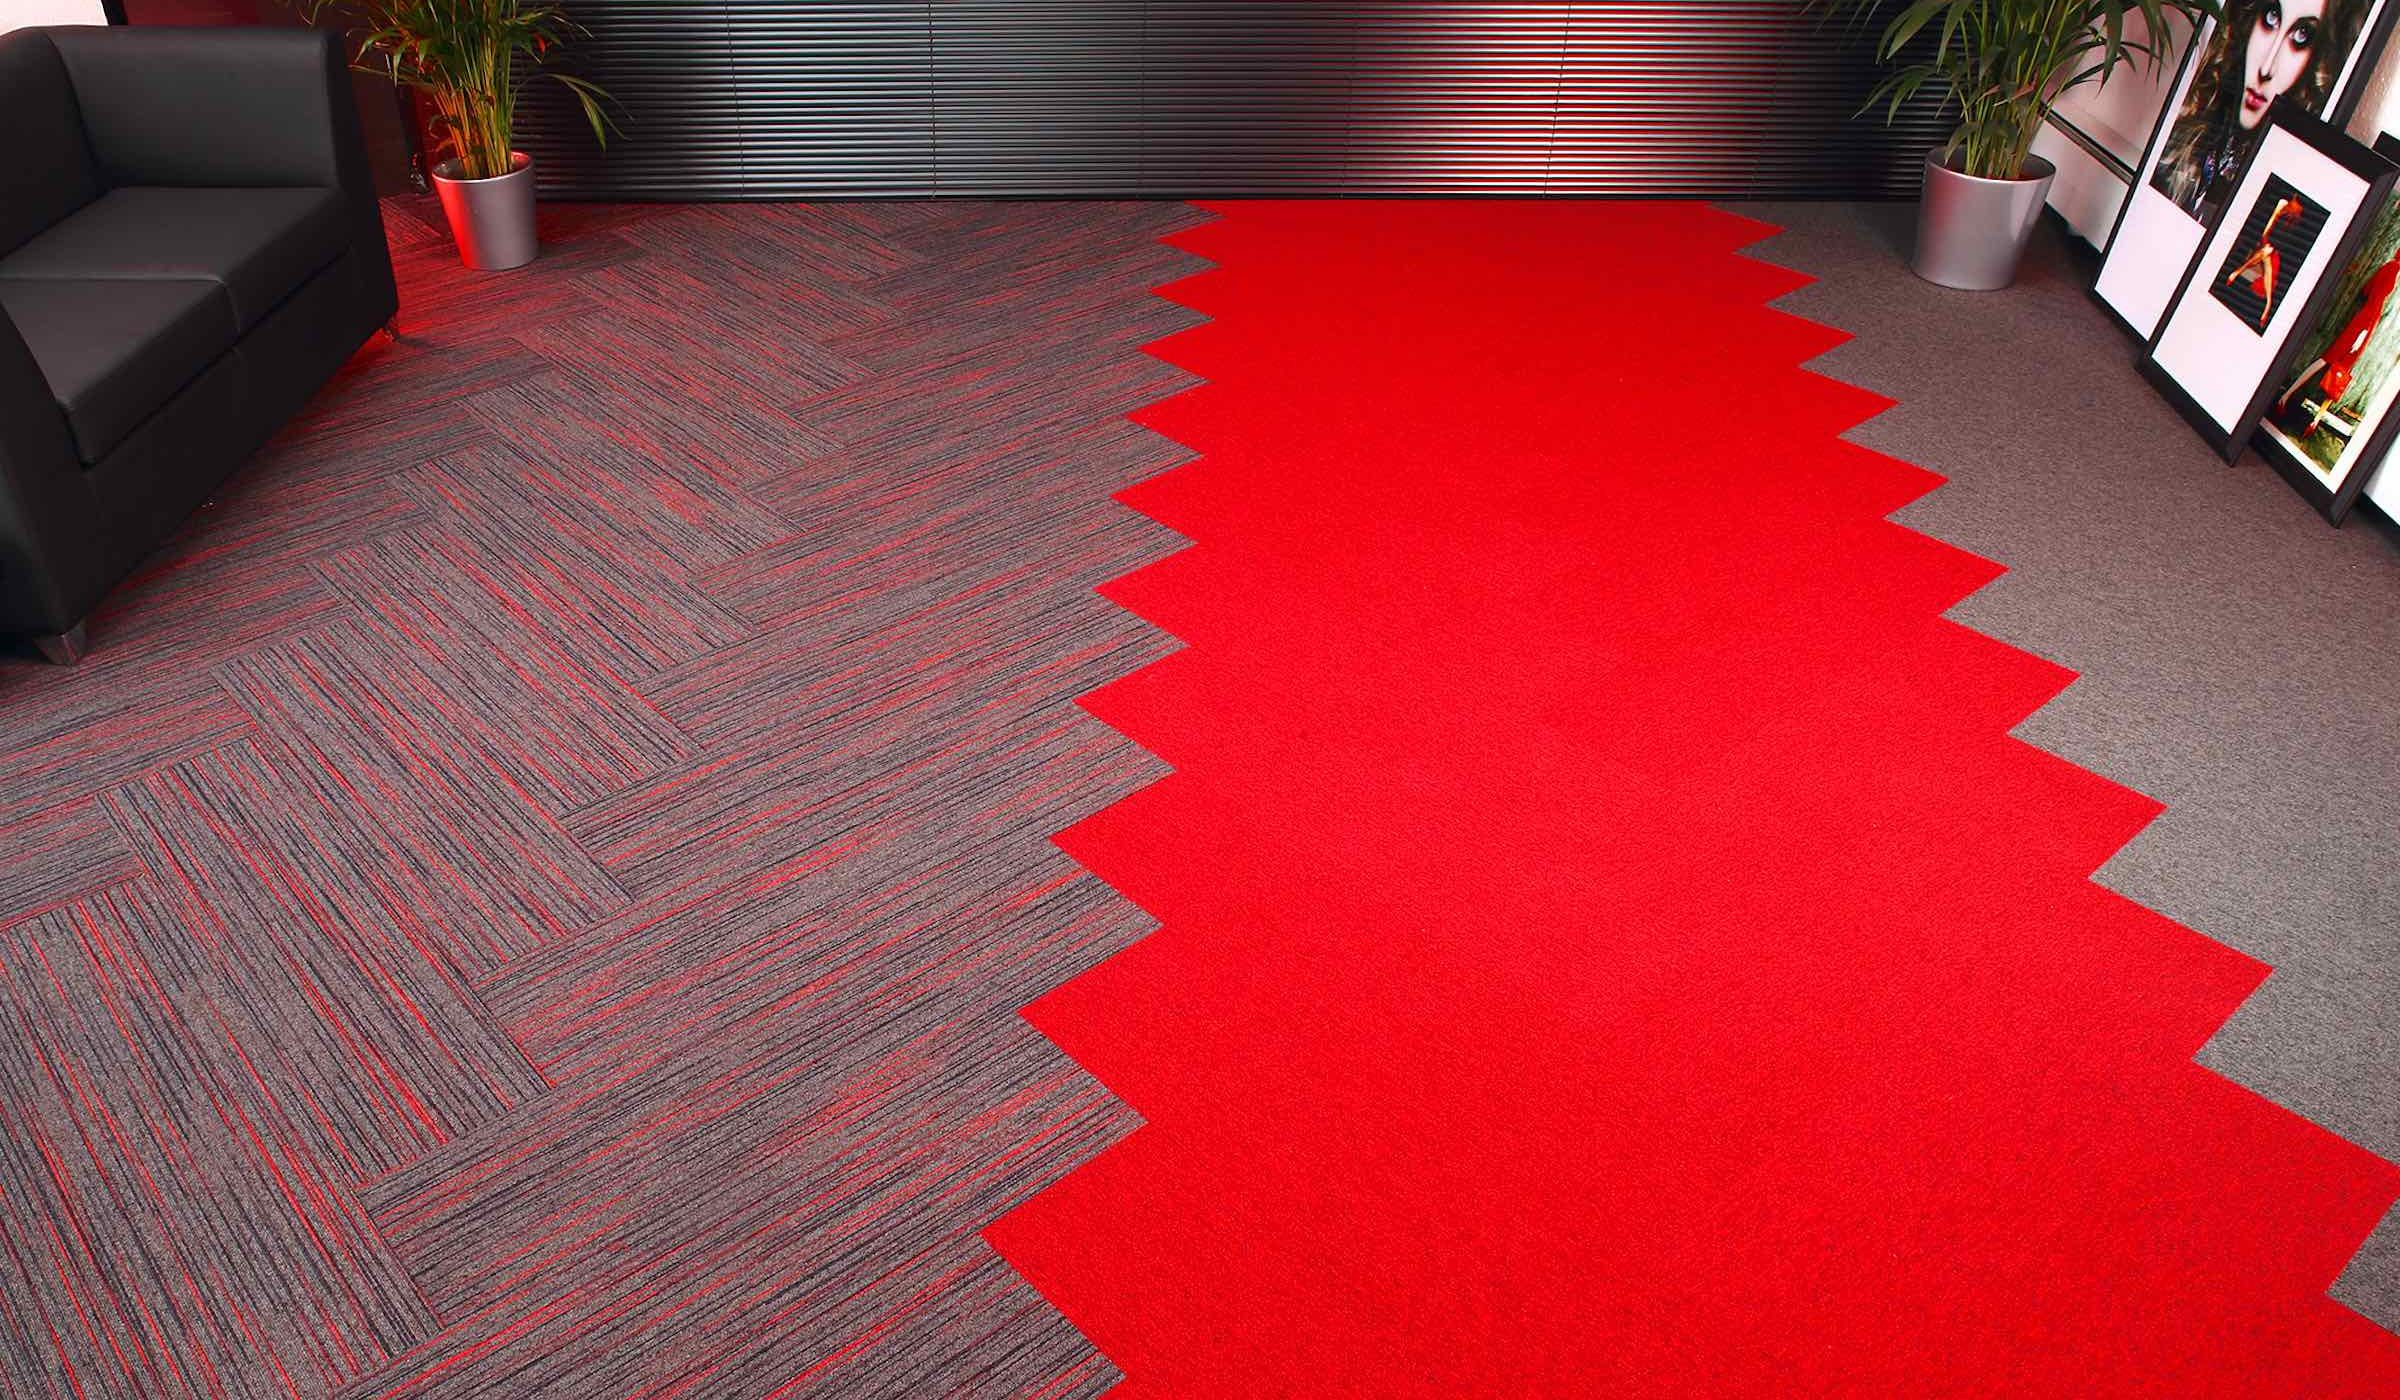 Design Dek | Paragon Carpet Tiles | Commercial Carpet Tiles | Design Carpet Tiles 6